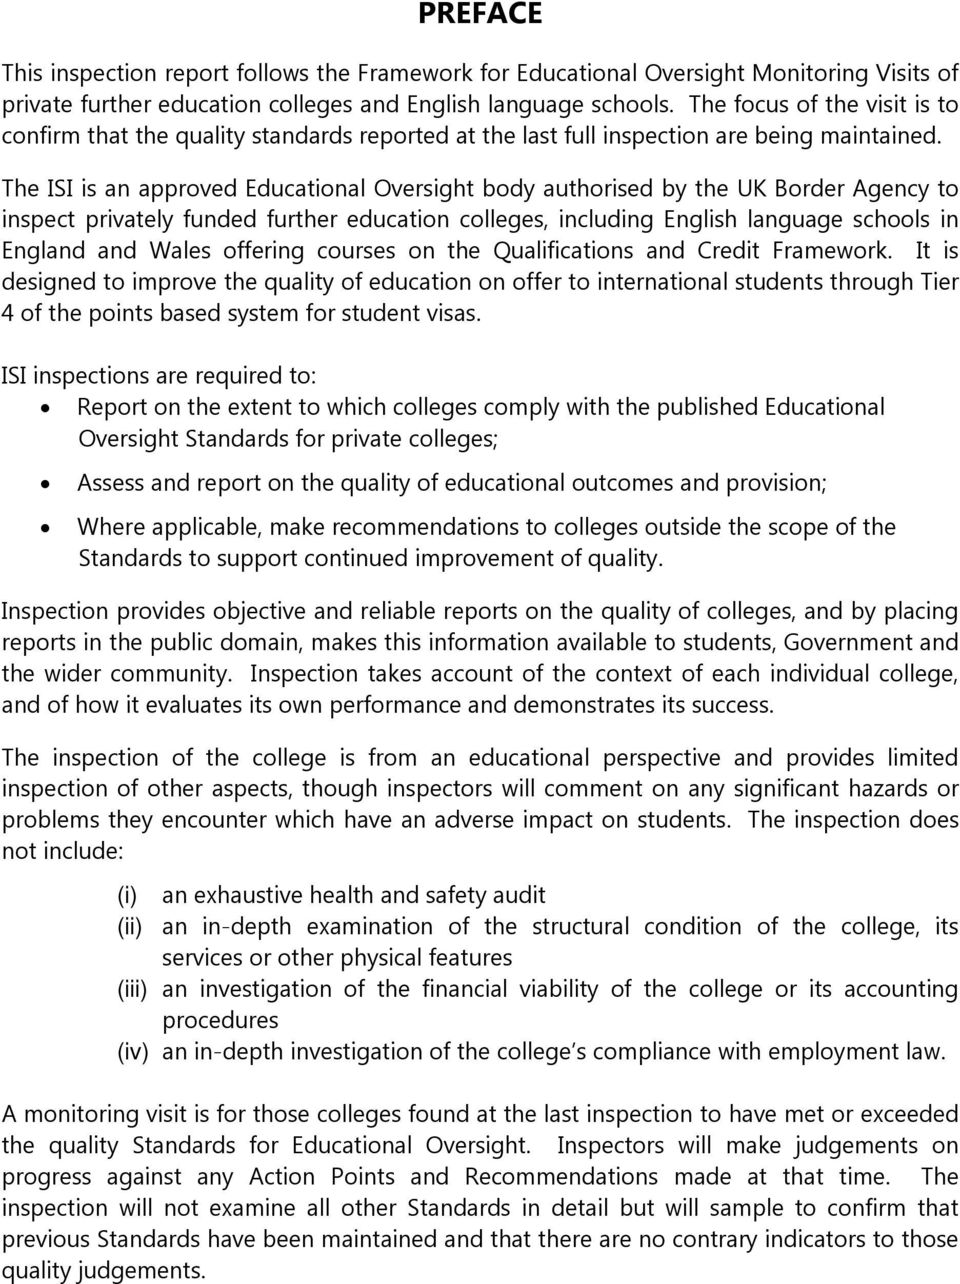 The ISI is an approved Educational Oversight body authorised by the UK Border Agency to inspect privately funded further education colleges, including English language schools in England and Wales